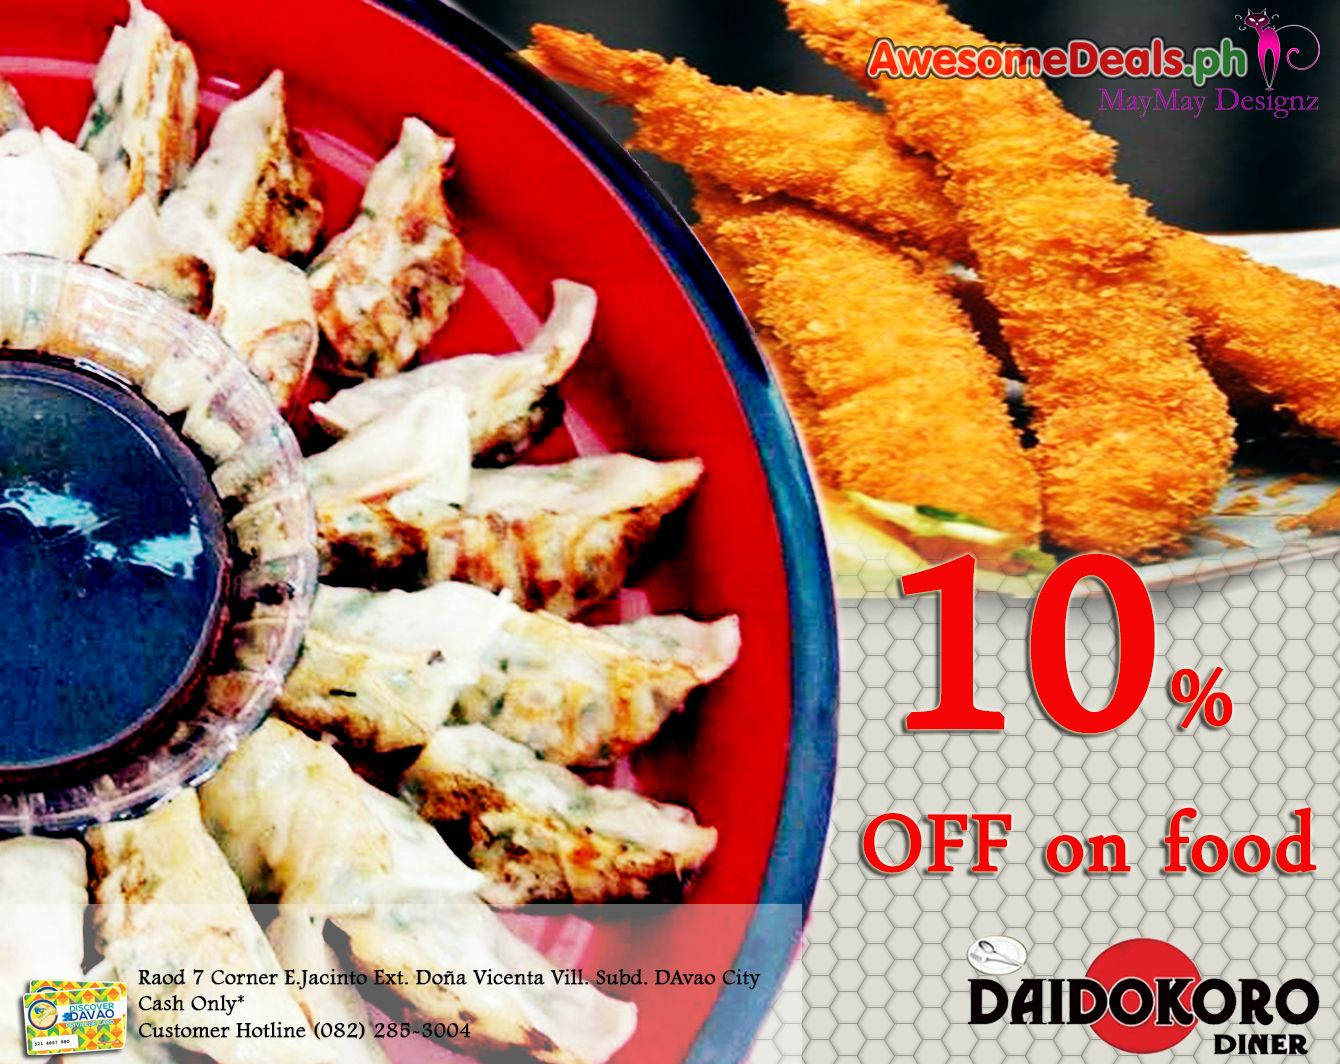 Love Japanese food? Daidokoro Diner, is one of Davao's best Japanese restaurant and it offers 10% discount in all food items. Simply show your AwesomeDeals privilege card and indulge in authentic Japanese cuisine. #DiscoverDavao #awesomedealsPH